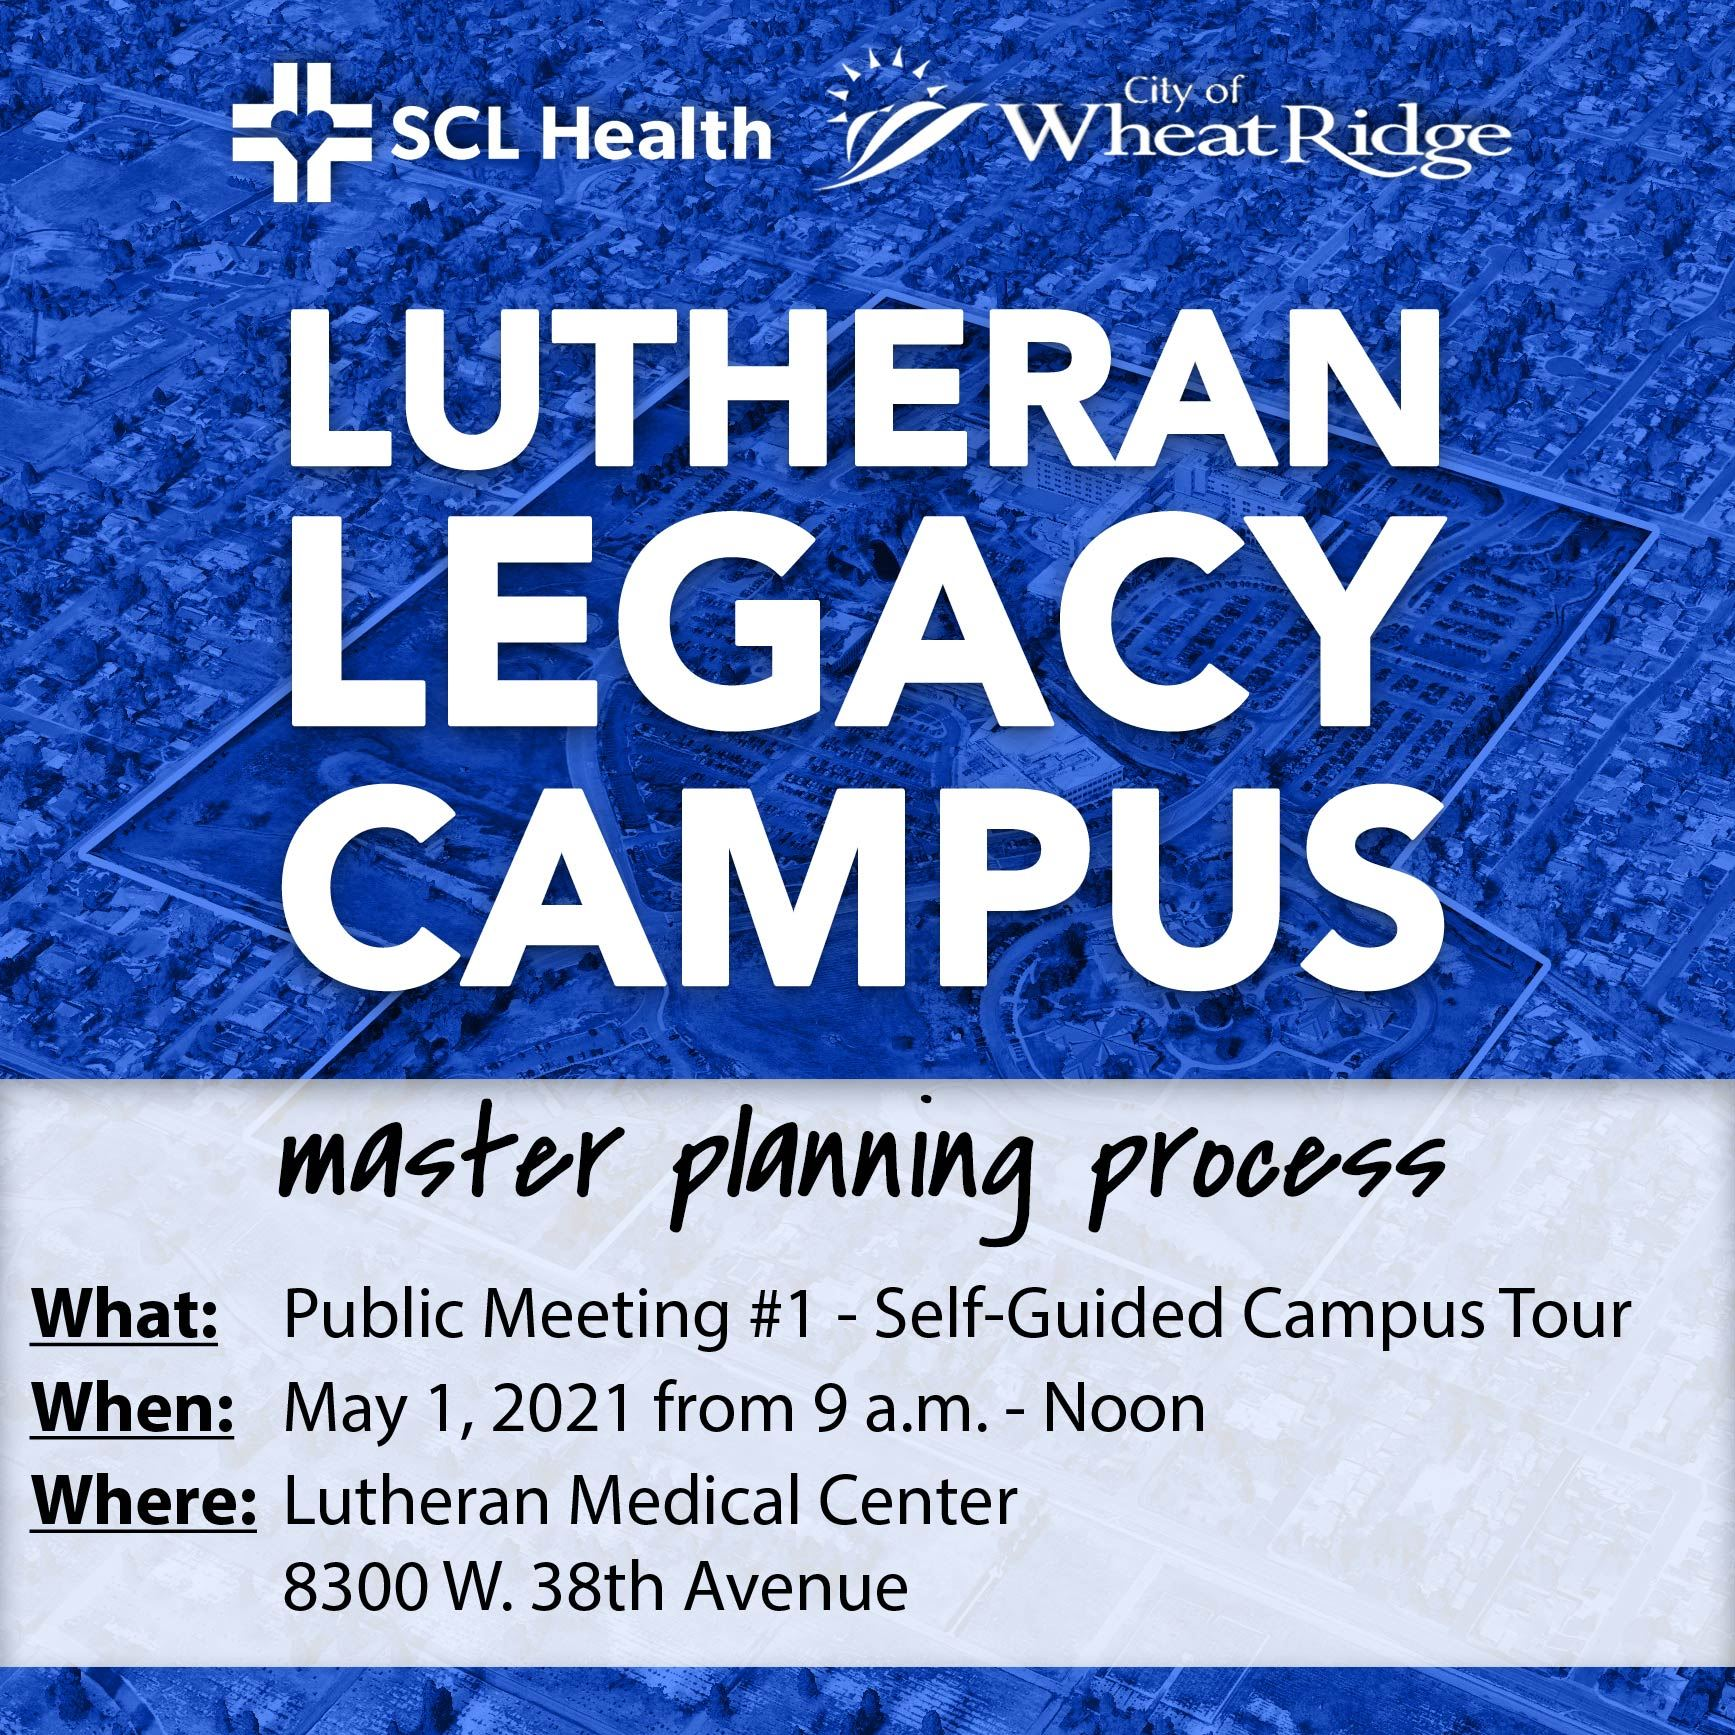 Lutheran - Public Event 1 - May 1 2021